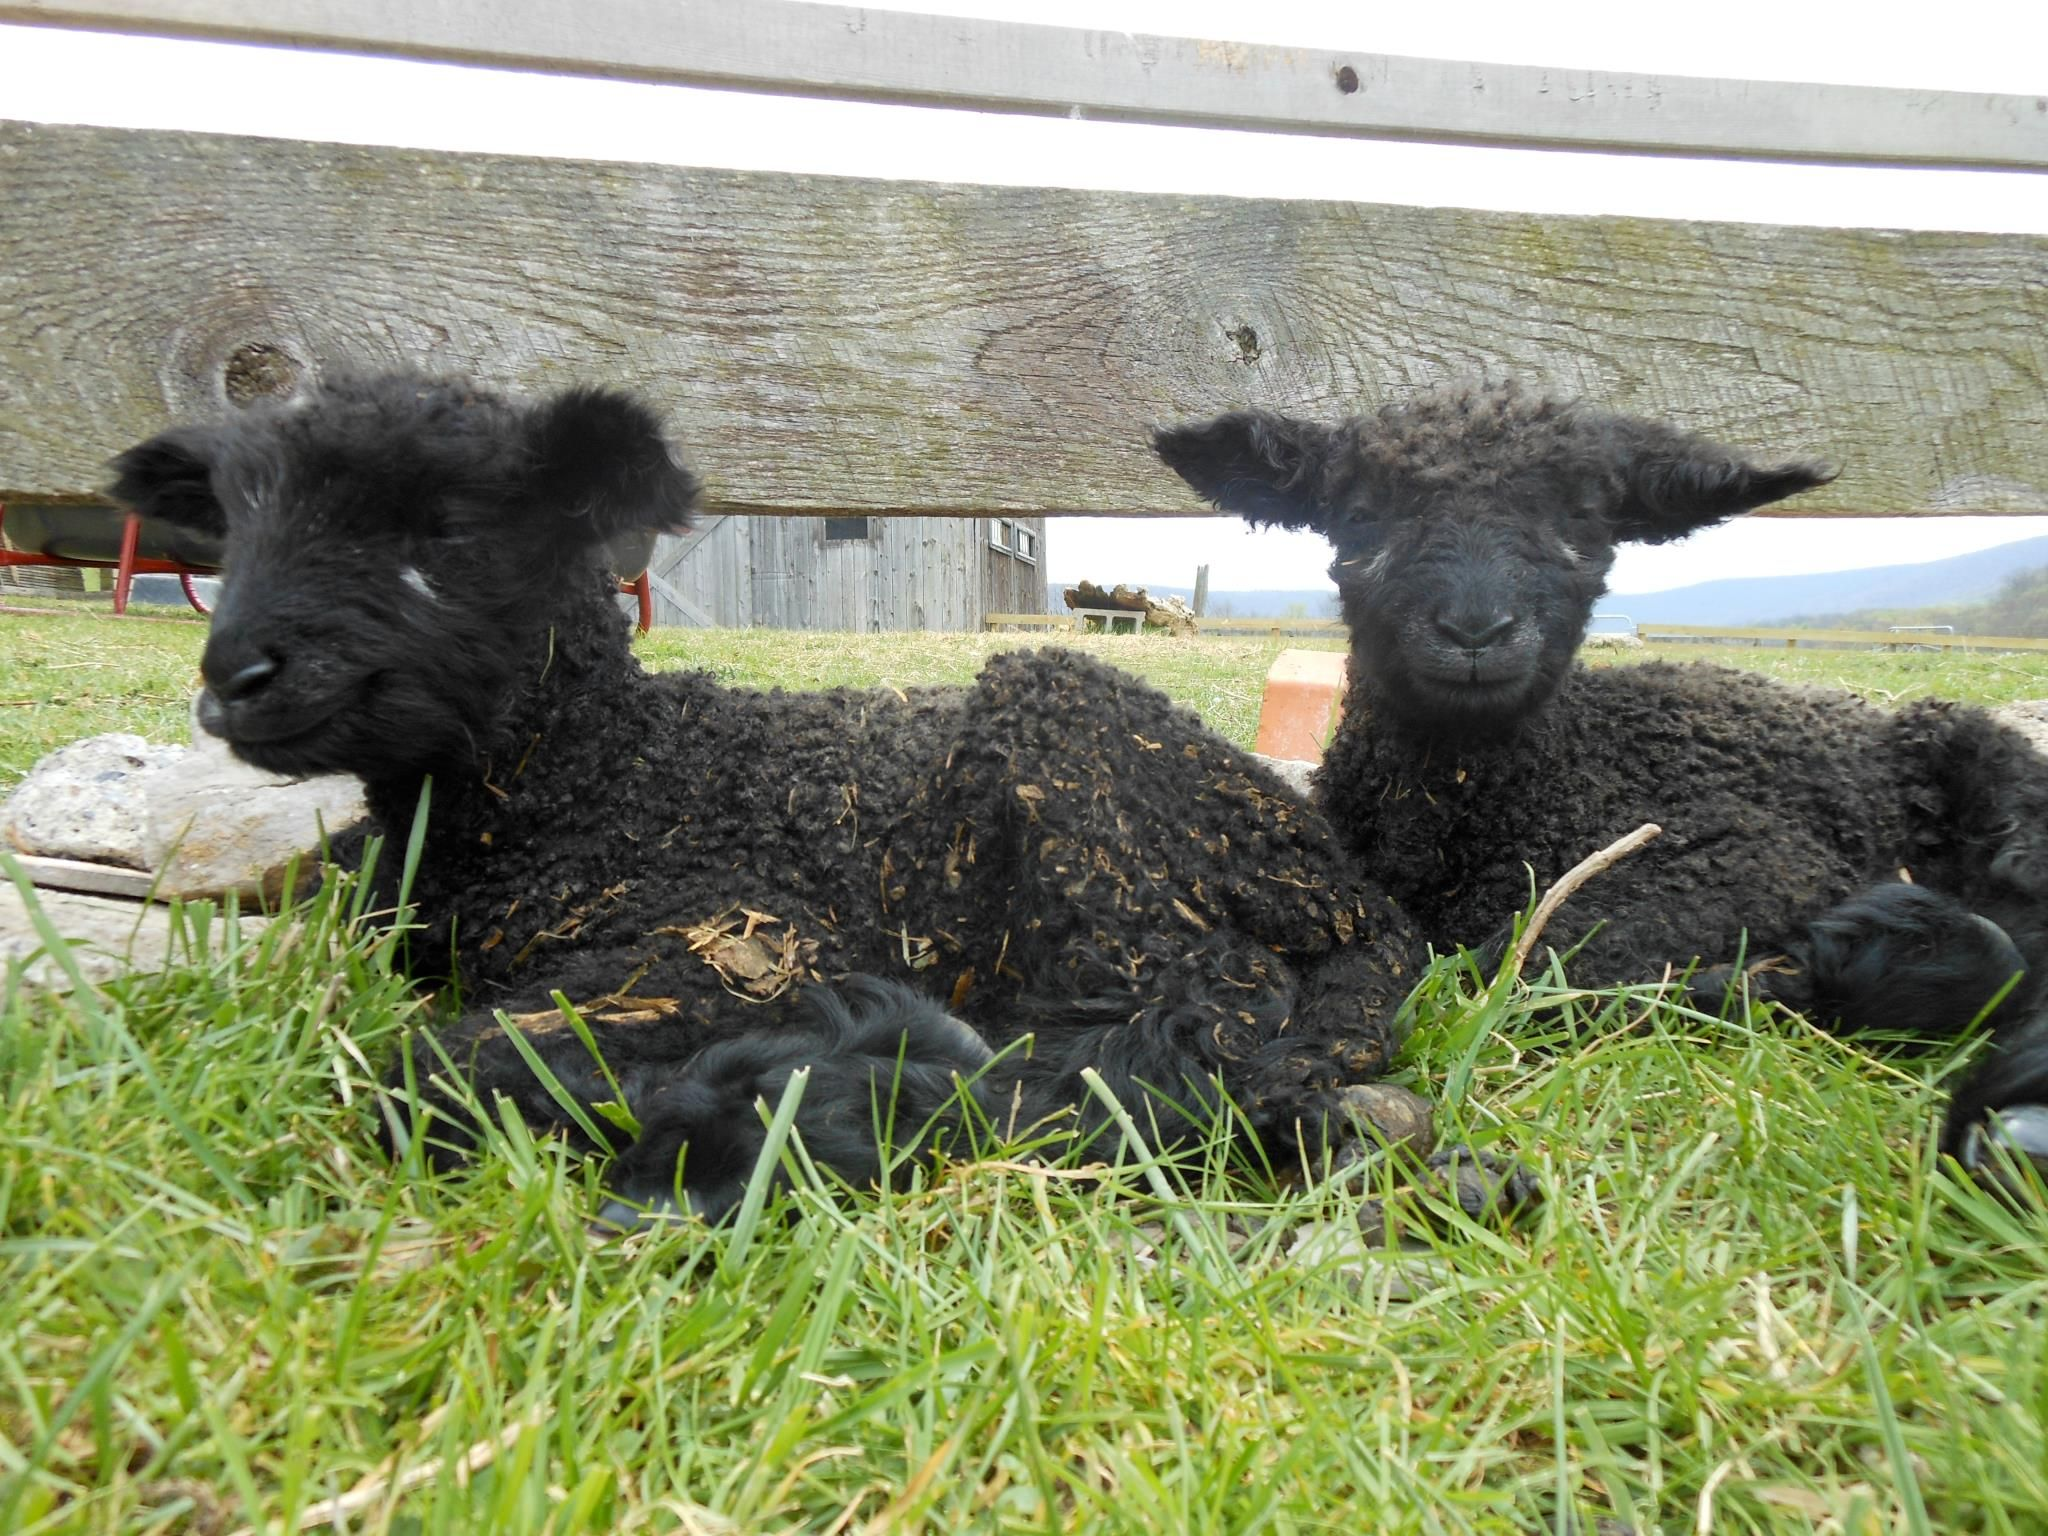 Leicester Longwool sheep Sheep breeds, Sheep and lamb